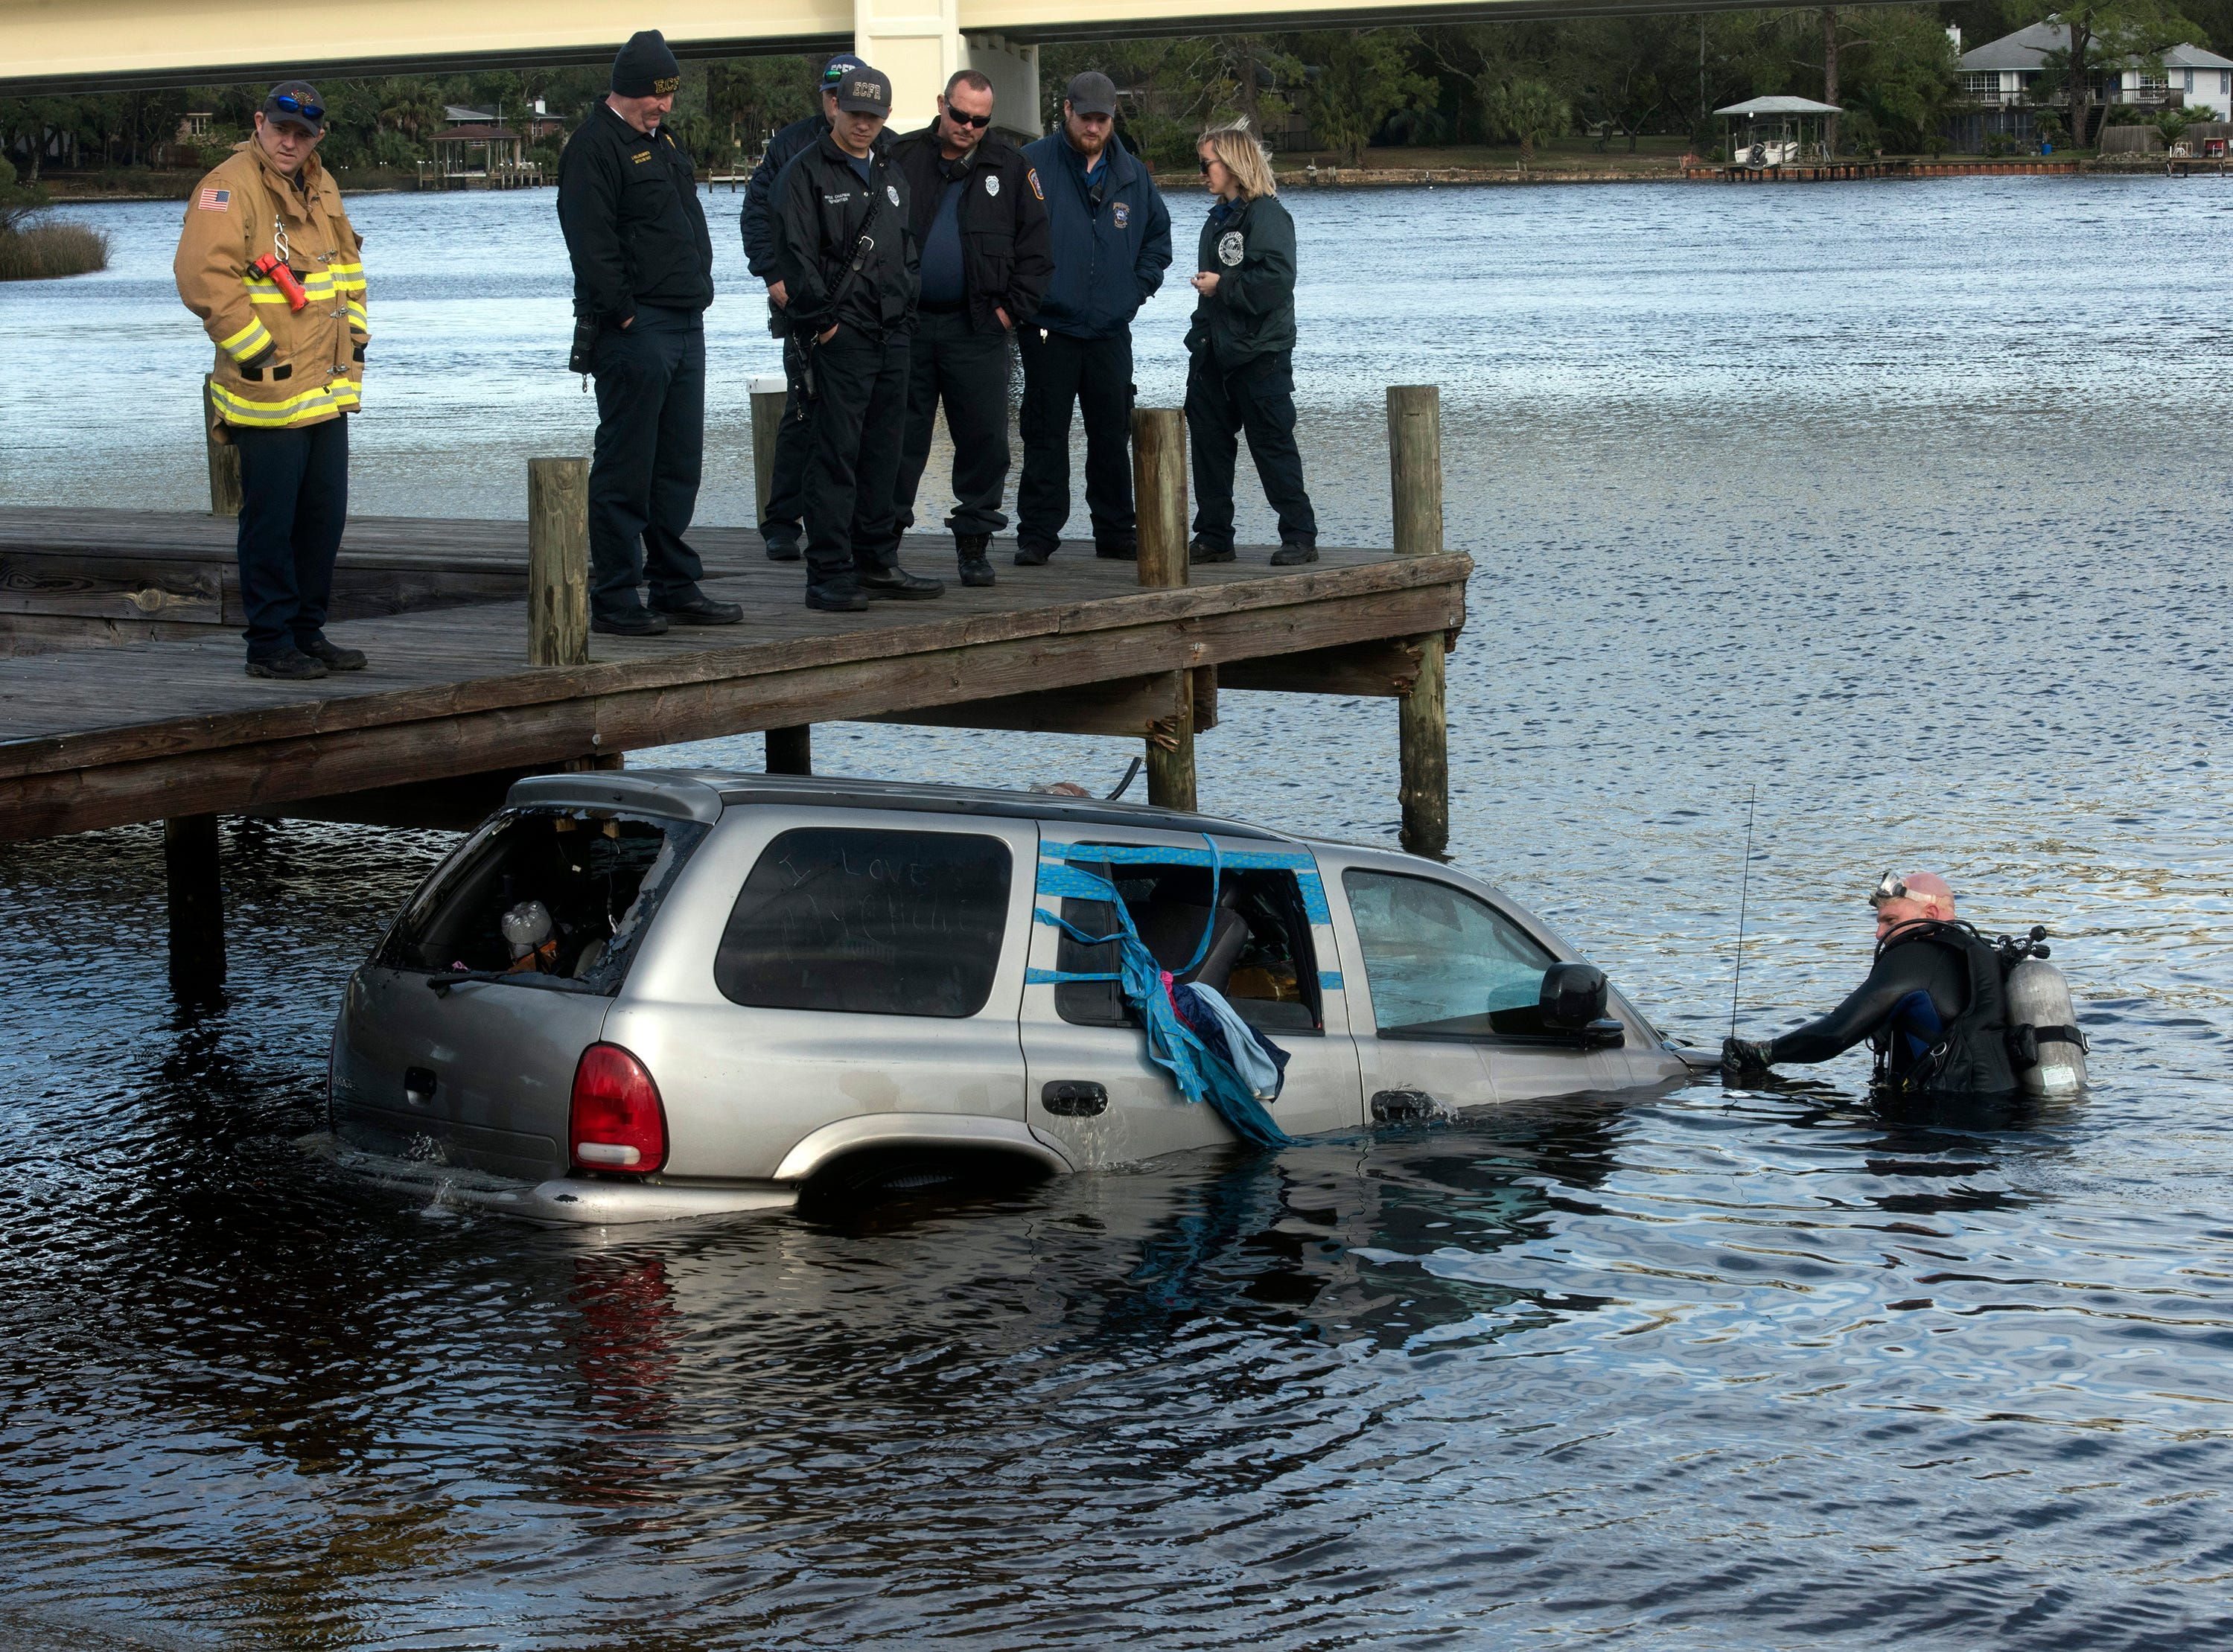 First responders from Escambia Fire Rescue, the Department of the Navy, Emergency Medical Services and Florida Patrol work to remove a submerged vehicle from the Navy Point boat Ramp on Friday, Jan. 4, 2019.